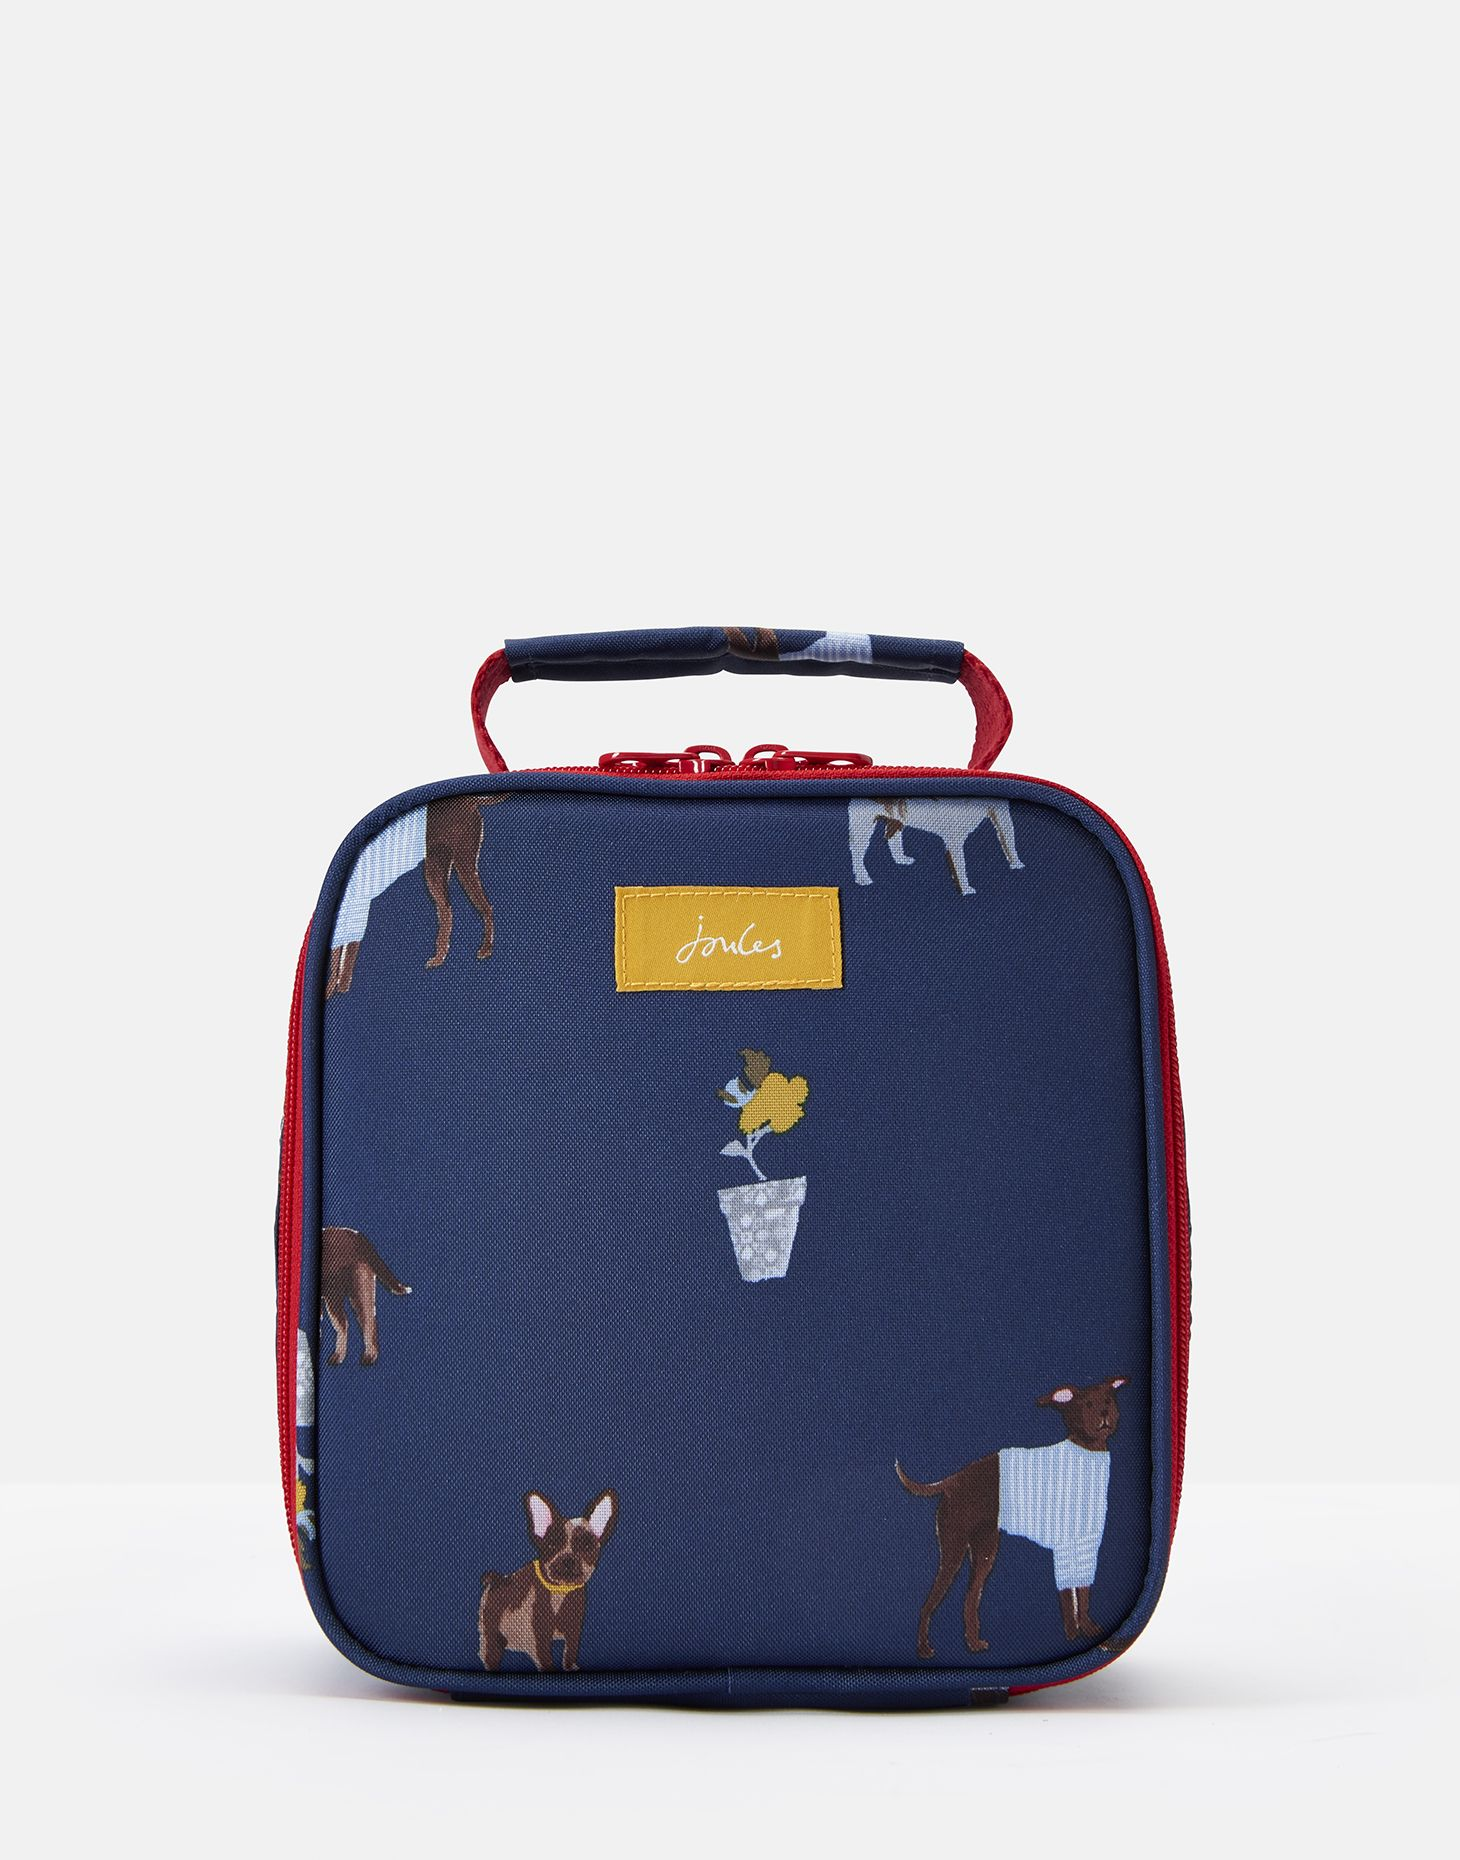 2f6c1abce8cd Picnic Lunch Bag Printed And Fully Insulated